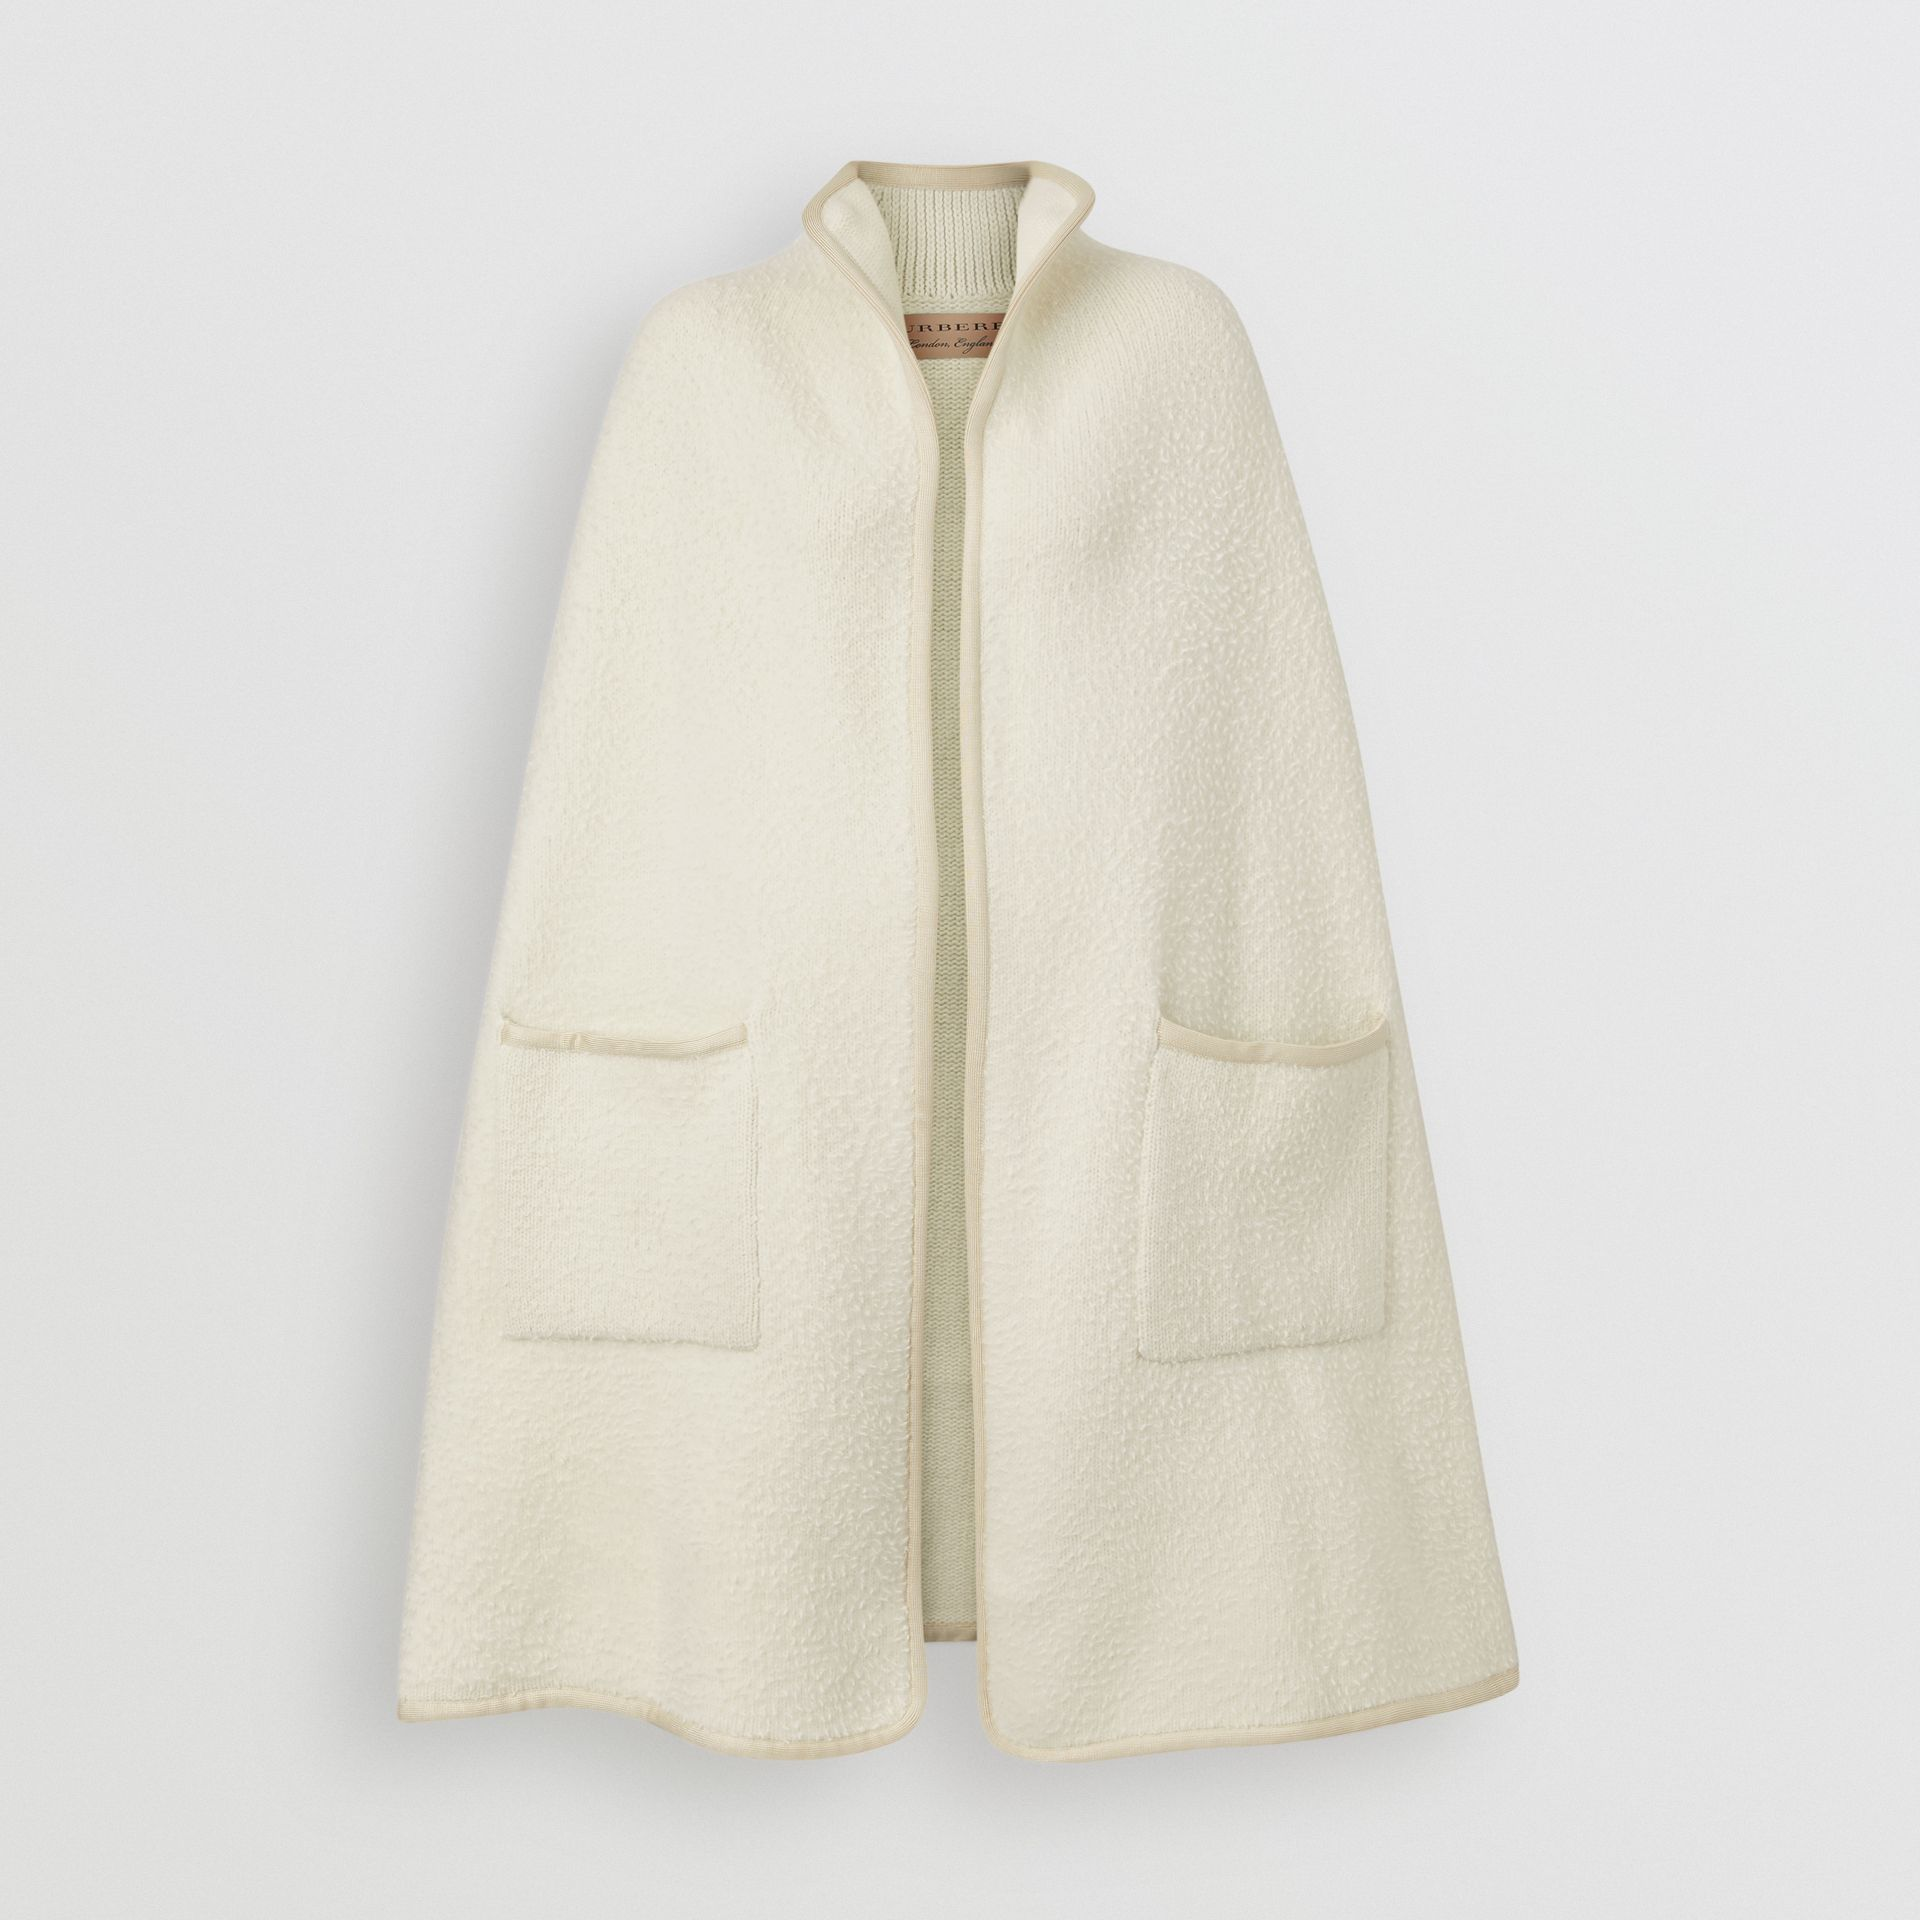 Wool Fleece Cape in Ivory - Women | Burberry - gallery image 3